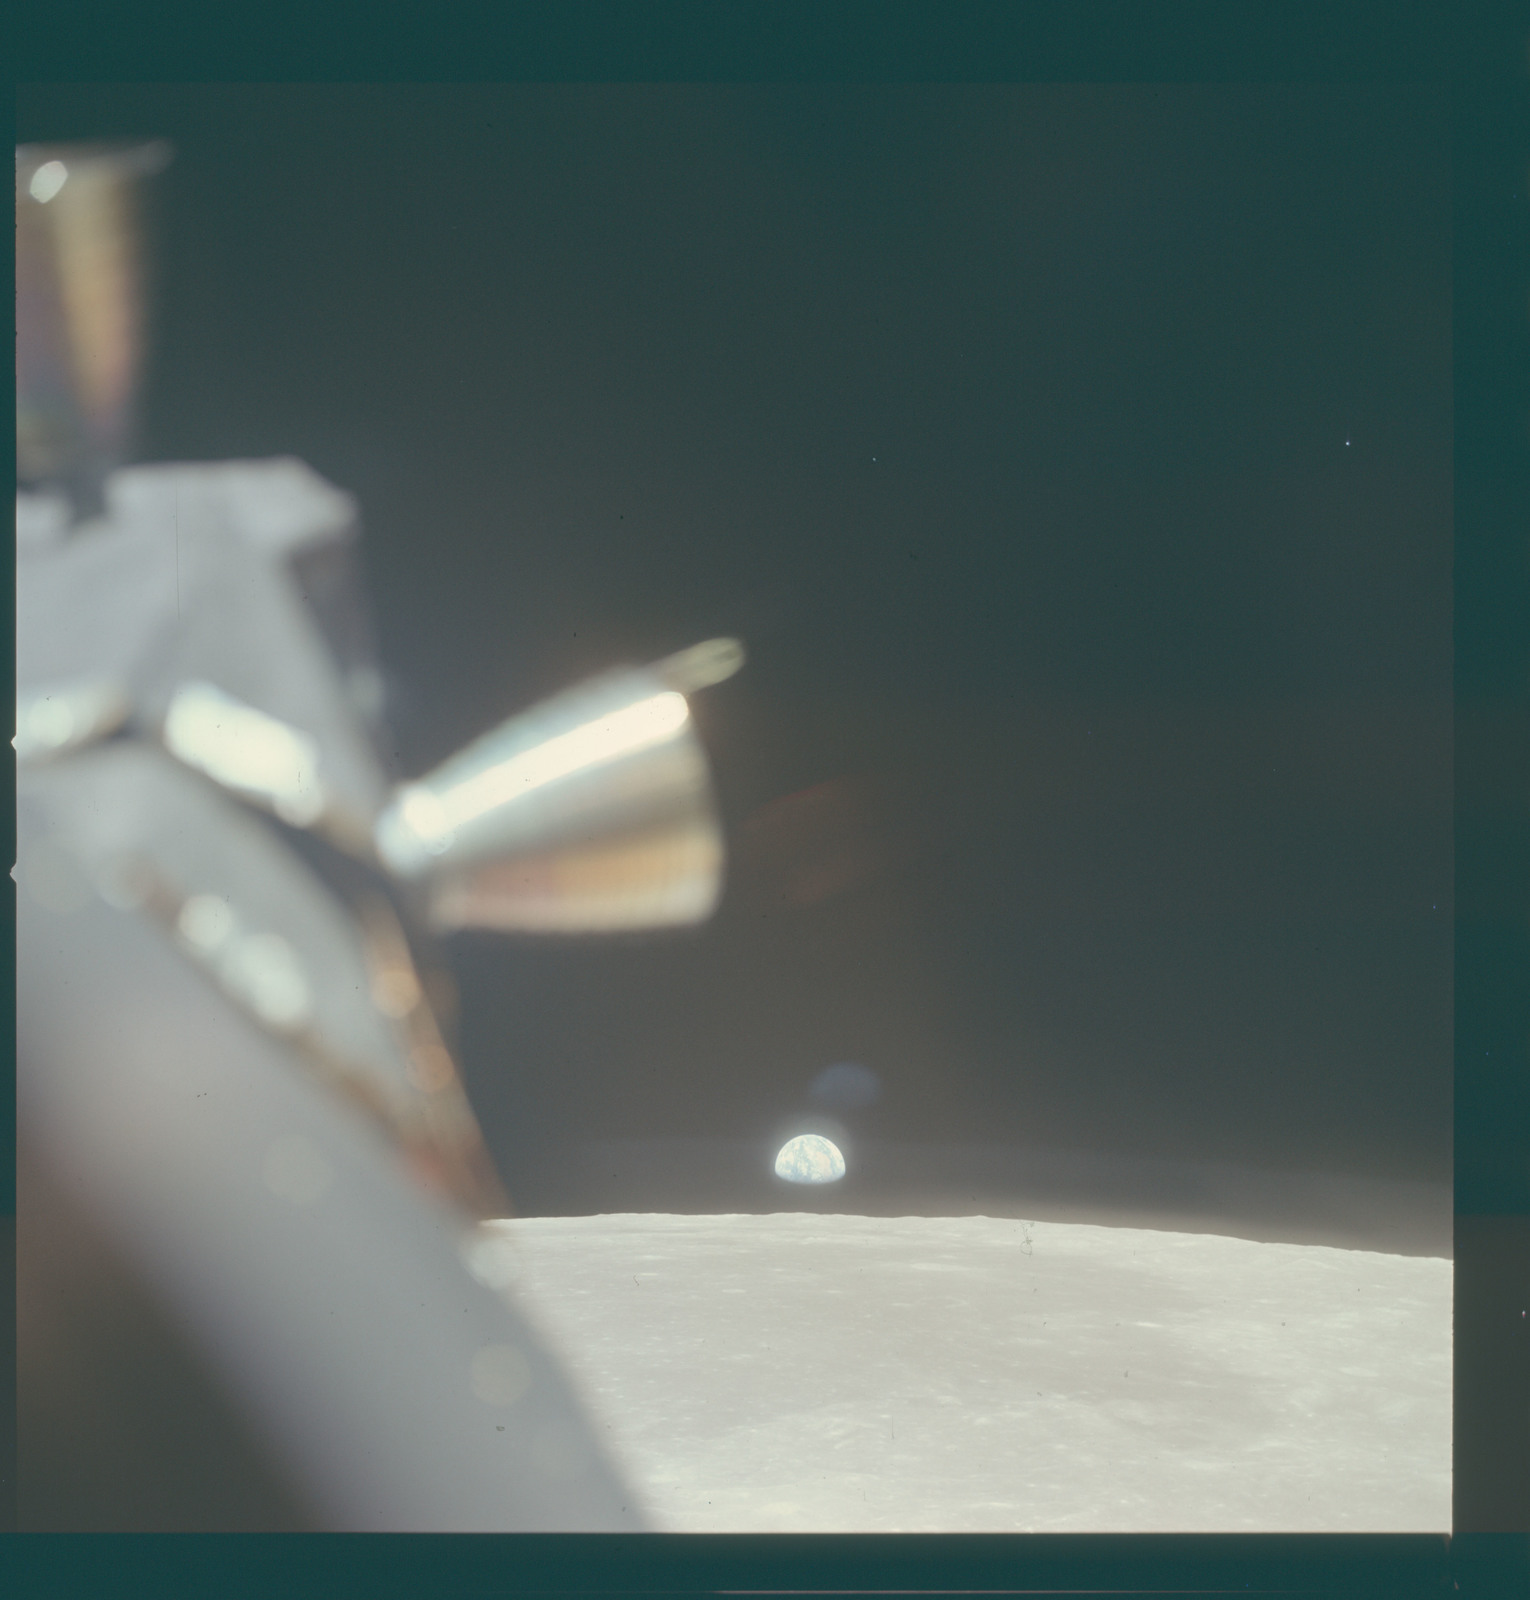 AS11-37-5439 - Apollo 11 - Apollo 11 Mission image - View of Moon, with Earth visible over the horizon